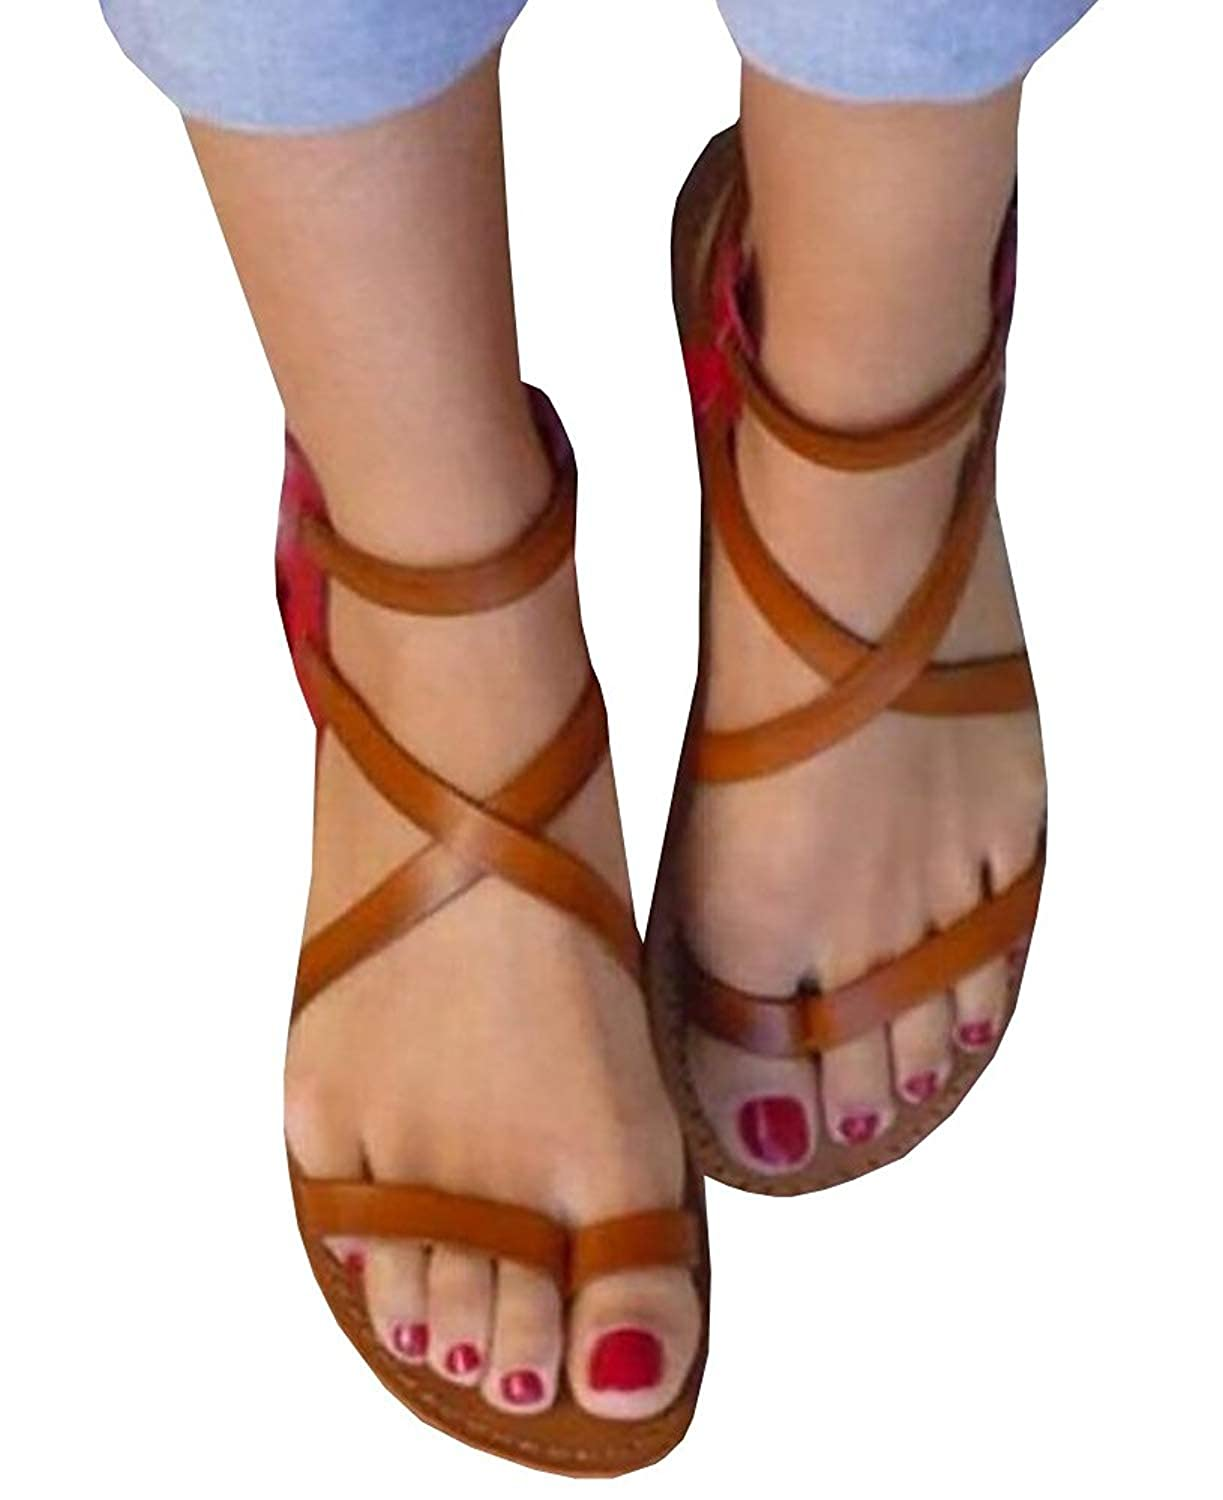 74254132de99 Synthetic sole. Cute Roman black thong strappy criss cross ankle wrap flat  summer beach gladiator sandals for women. Casual brown flip flop gladiator  ...